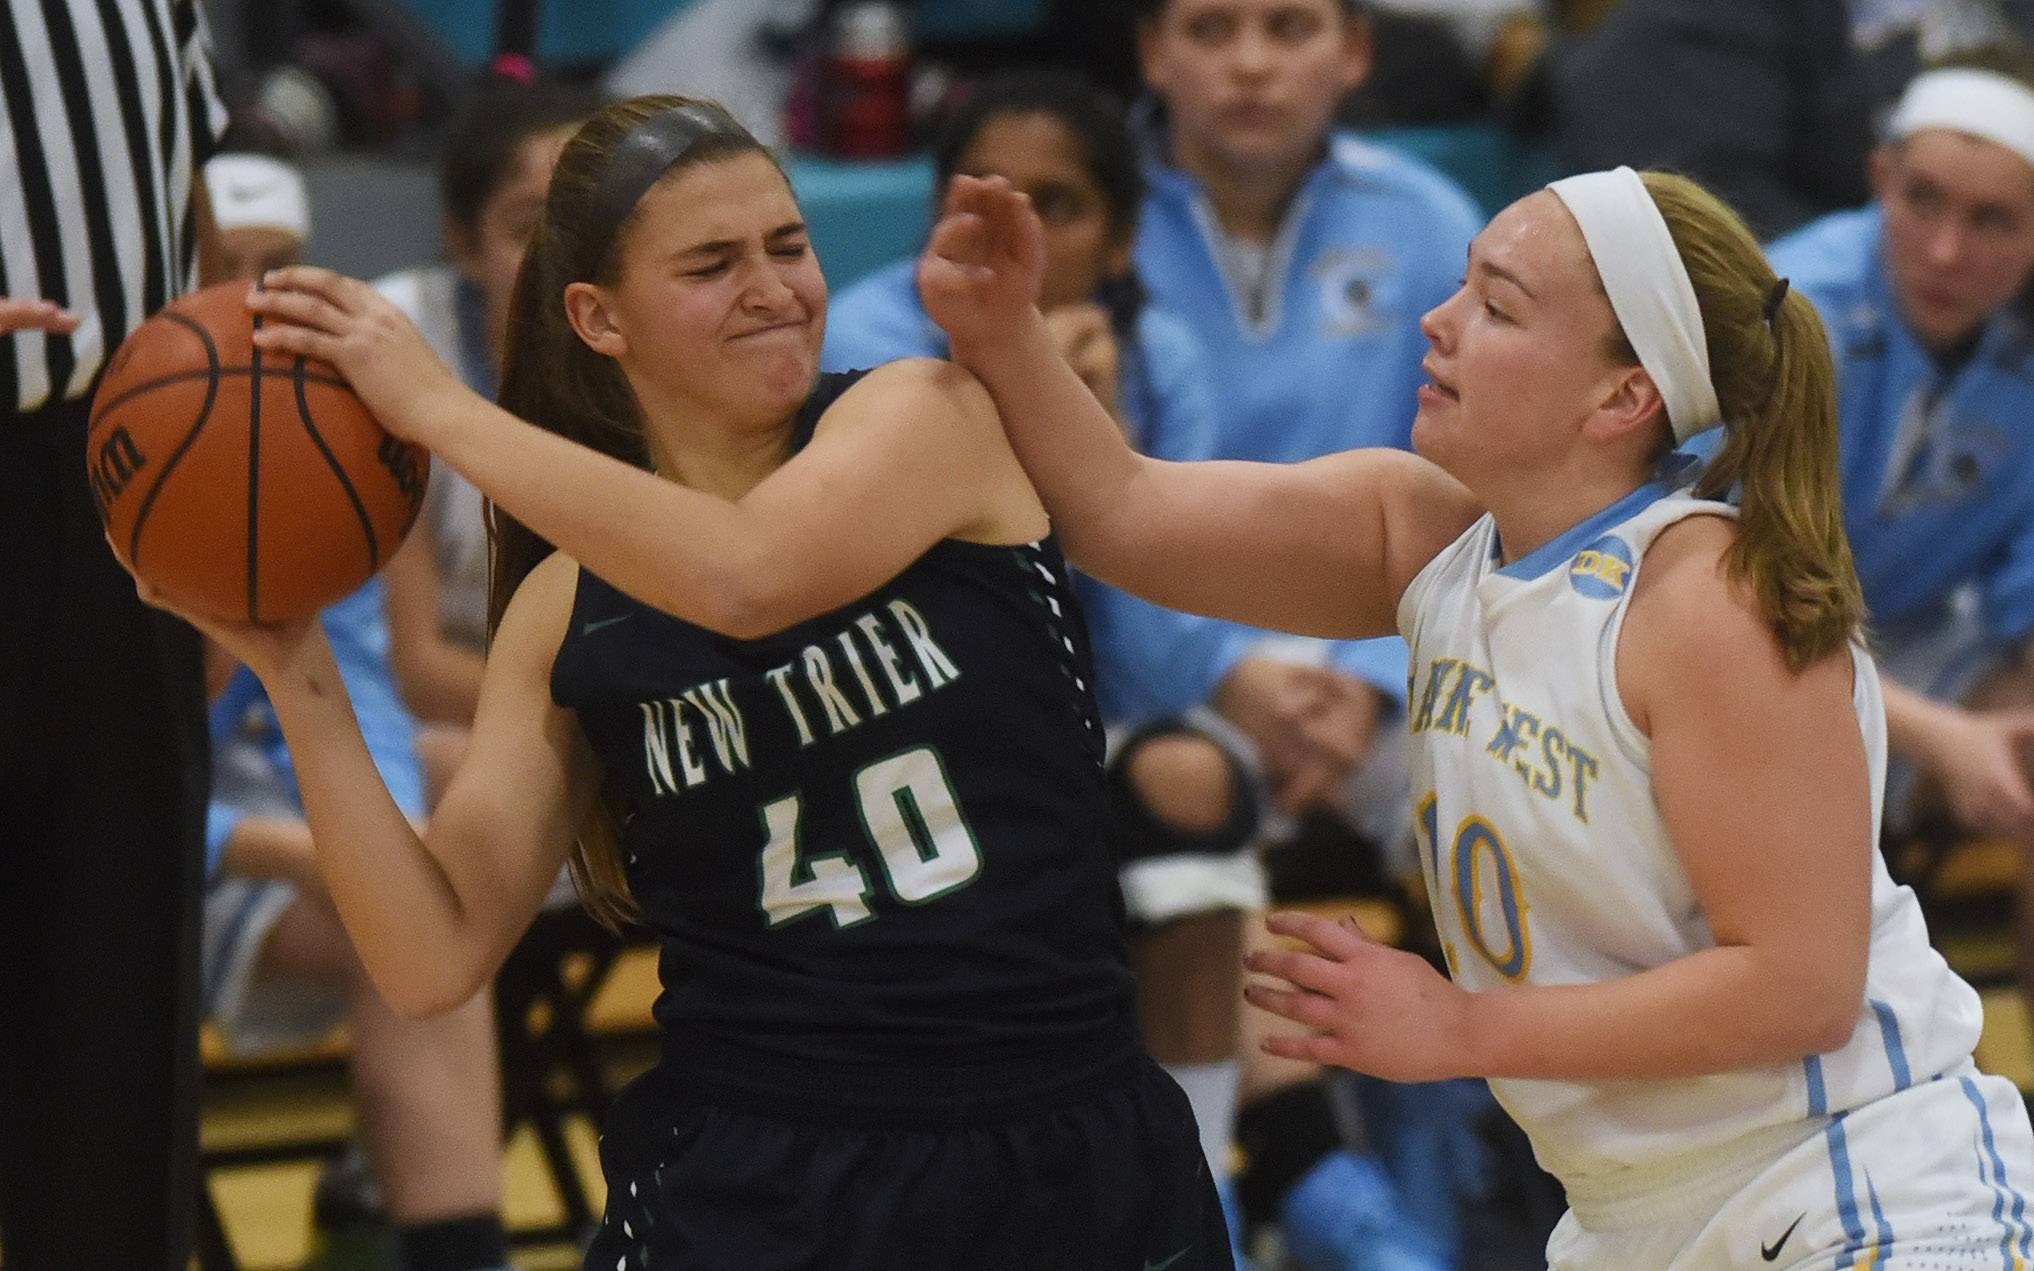 New Trier's Nicole Kaspi, left, is closely guarded by Maine West's Allison Pearson during Tuesday's game in Des Plaines.